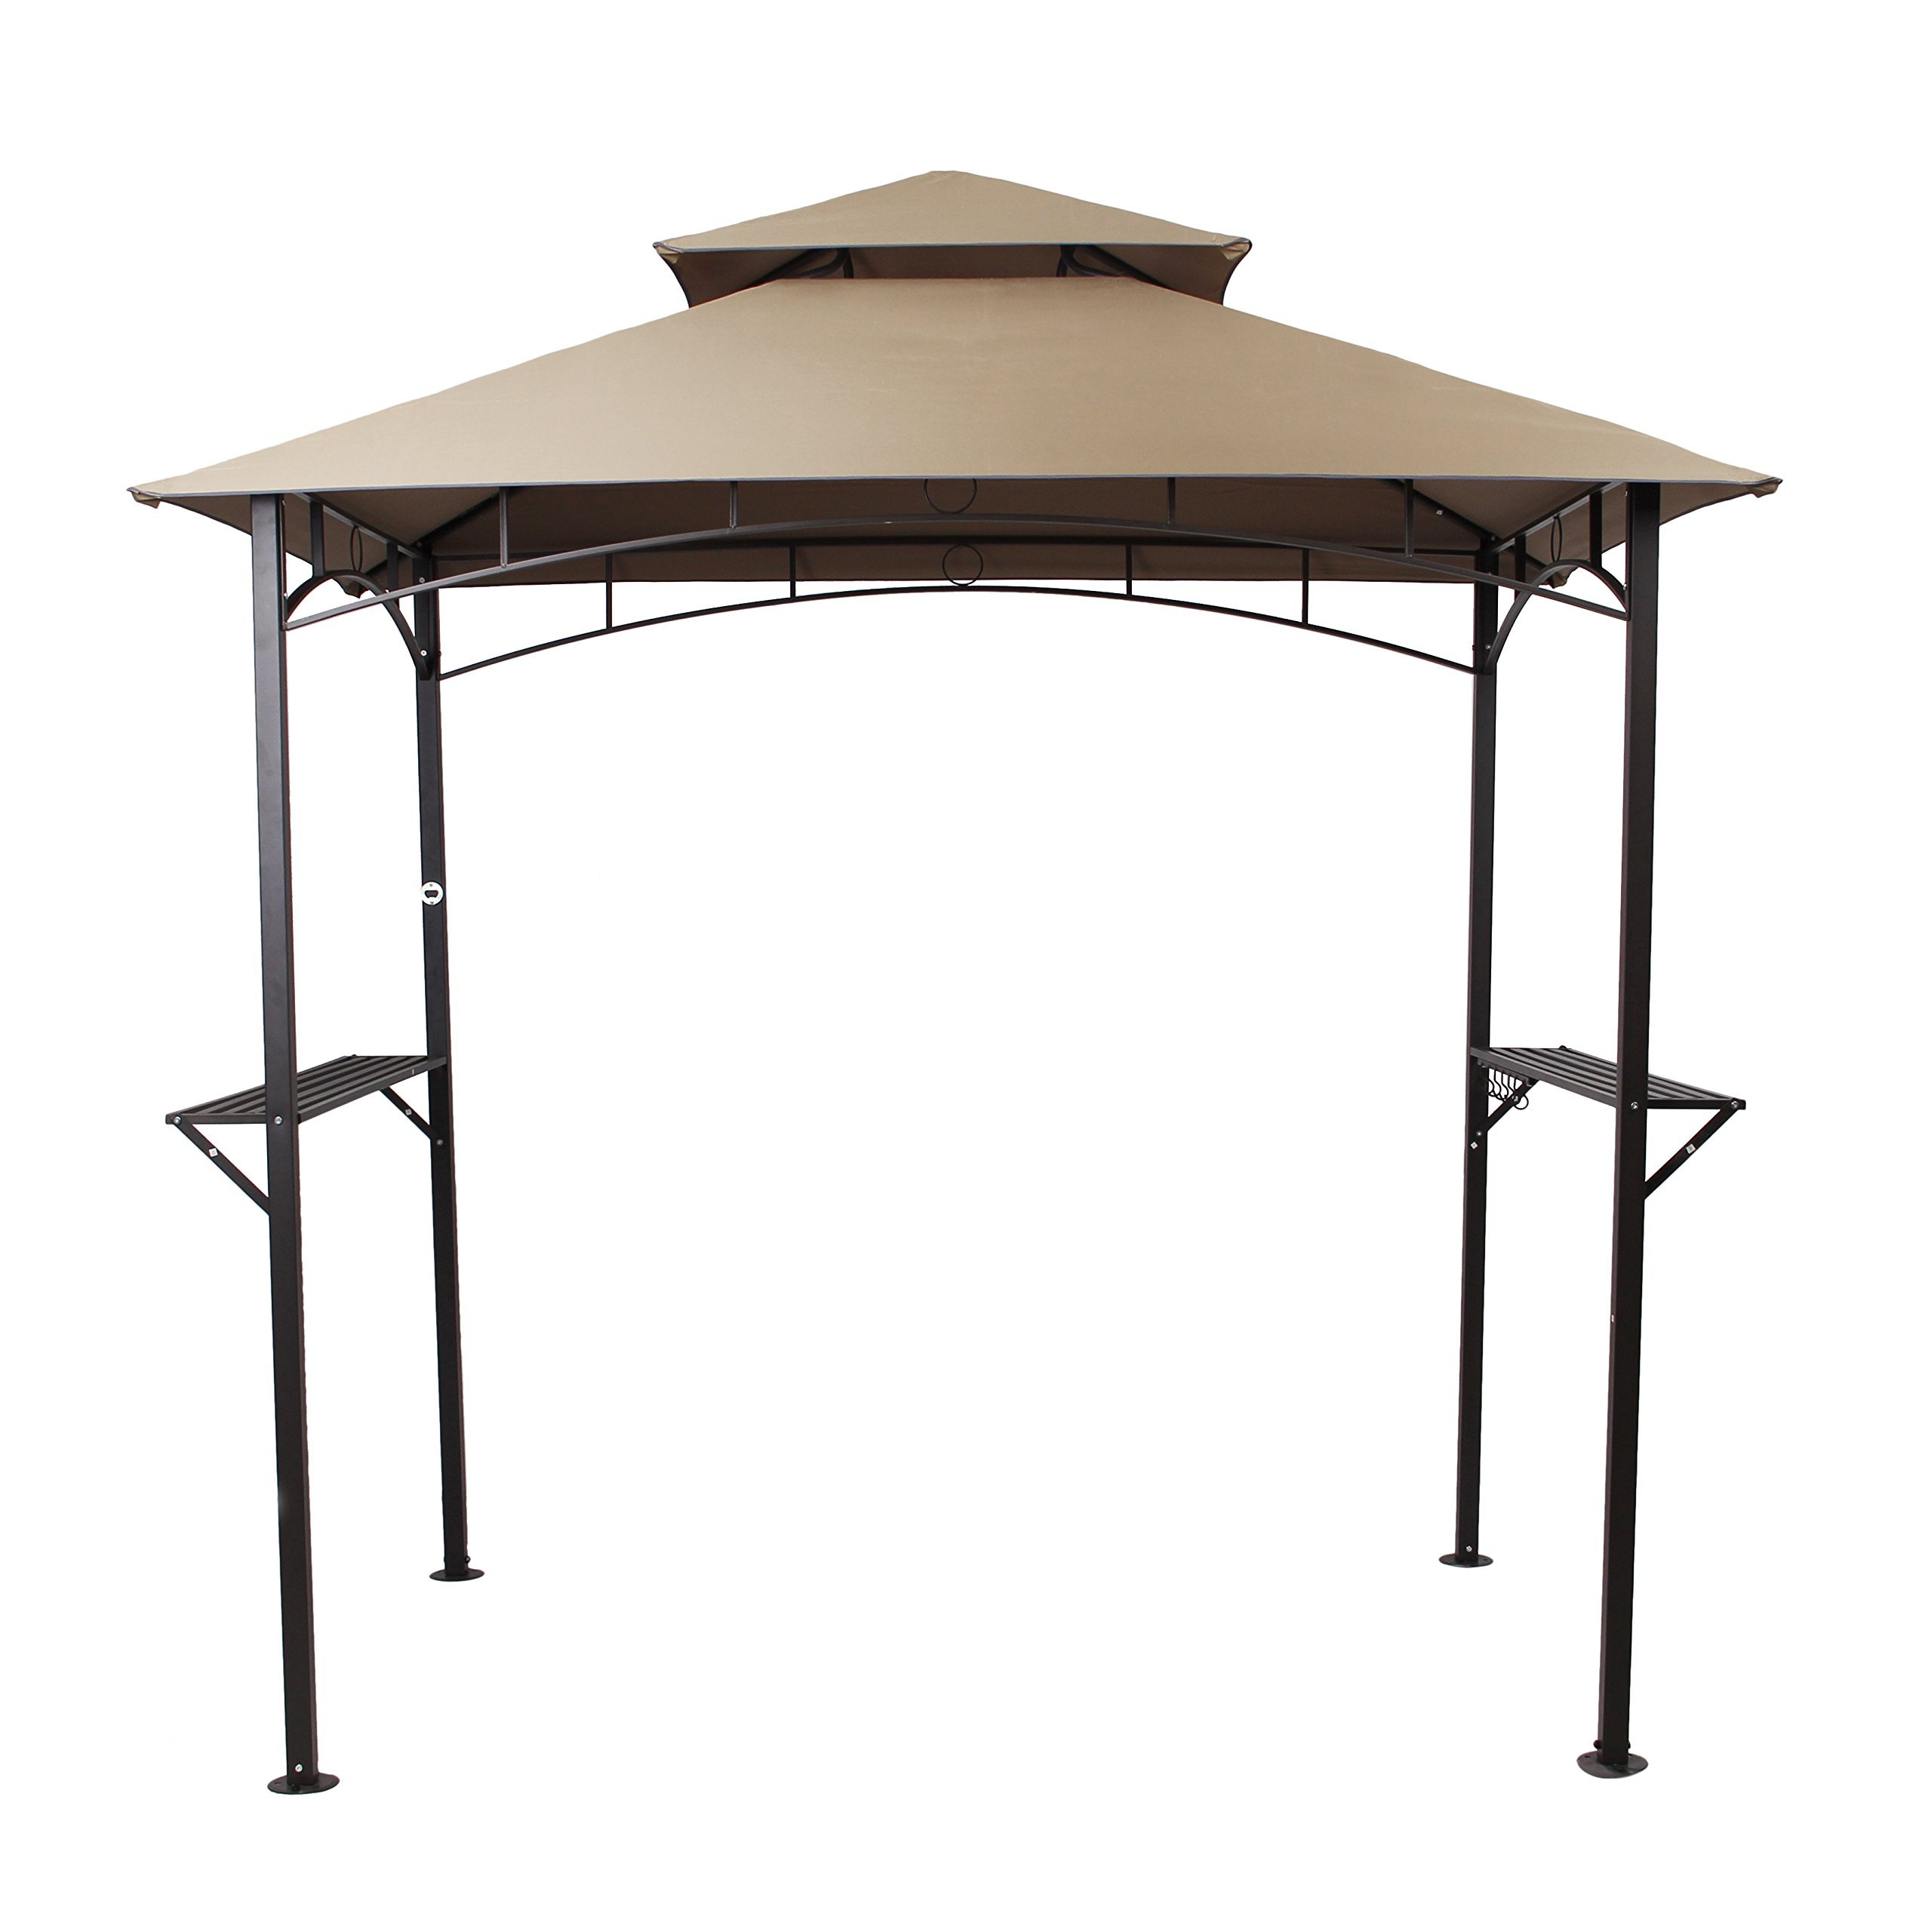 PHI VILLA 8'x 5' Outdoor Soft Top Grill Gazebo Patio Double-Tier BBQ Canopy, Brown